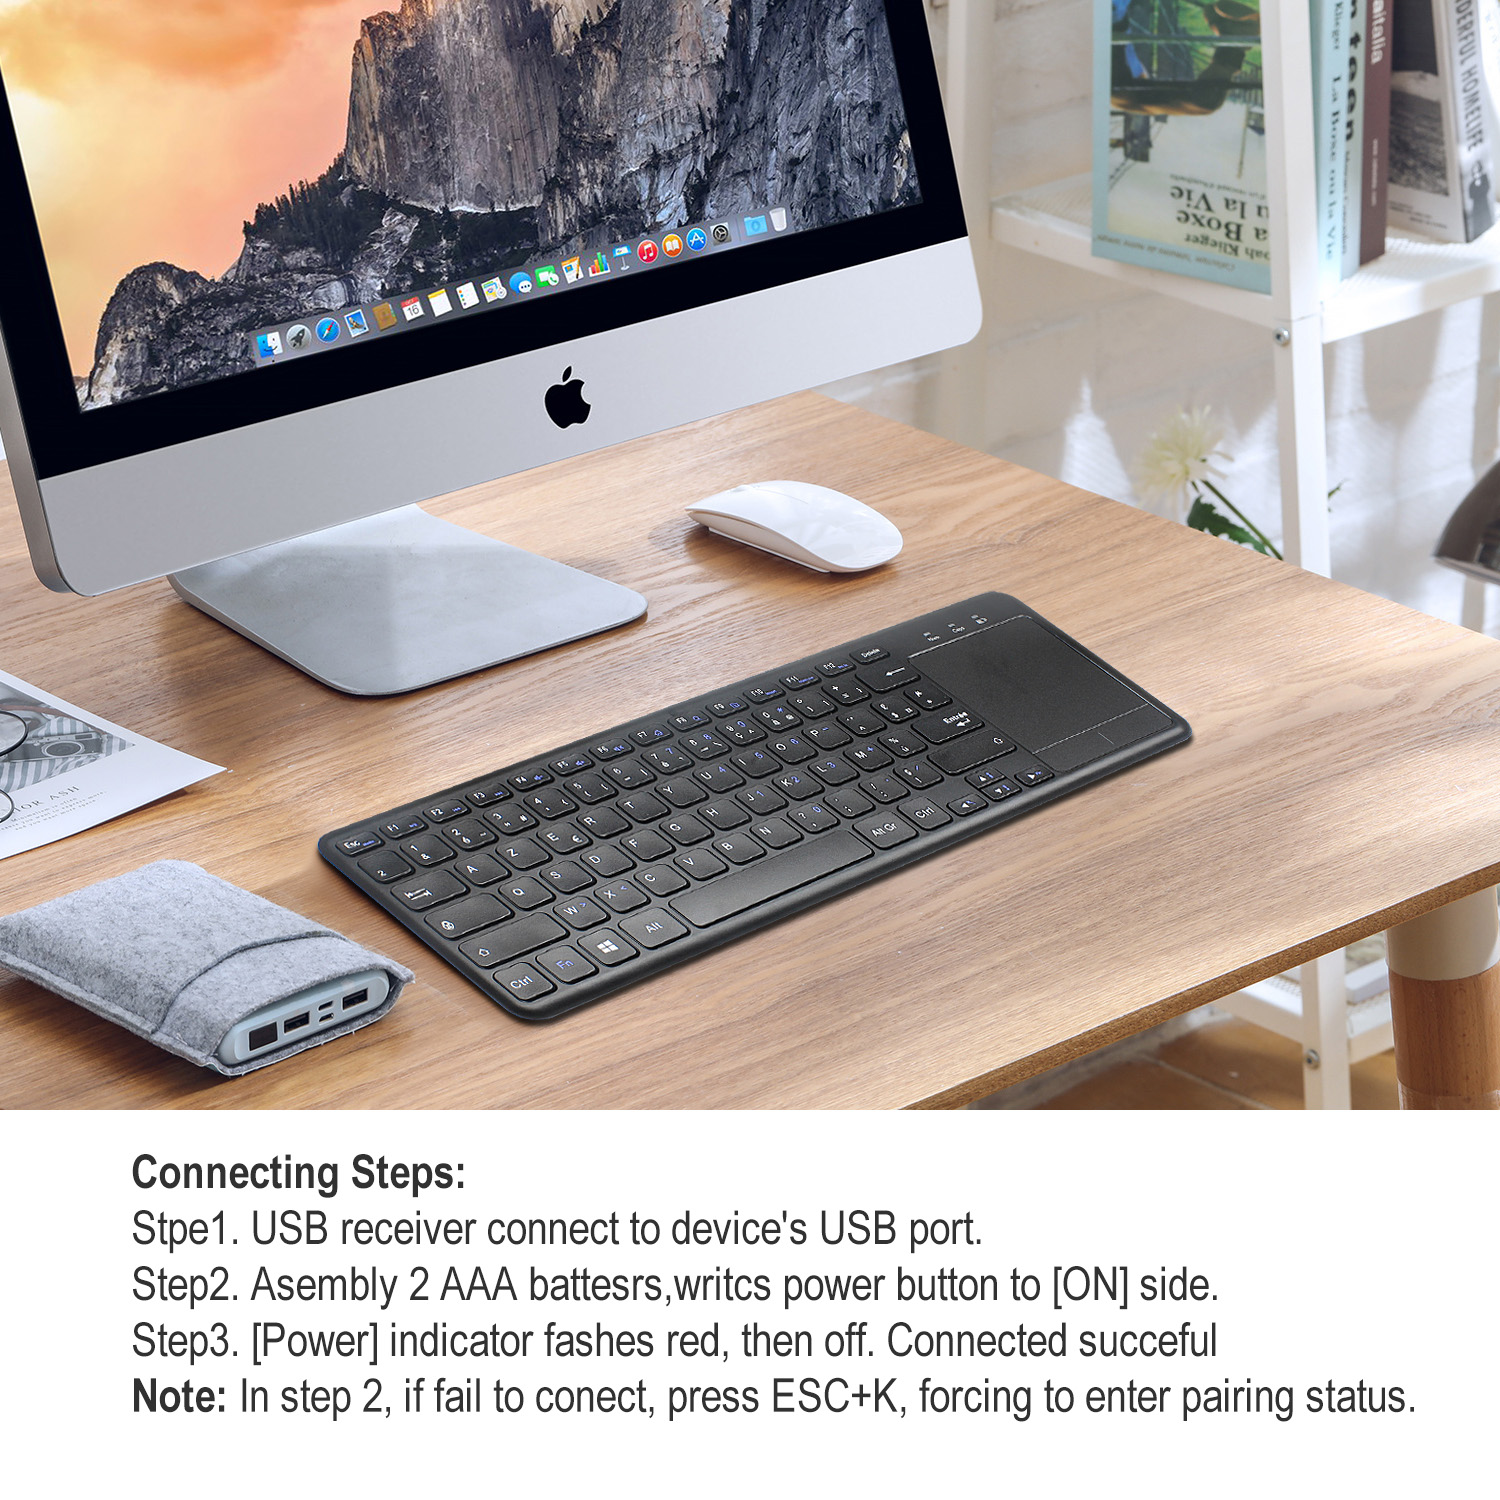 RONSHIN L200 Keyboard in English and French 2.4G Wireless Keyboard for Tablet Desktop with Touch Mouse L200 French Keyboard